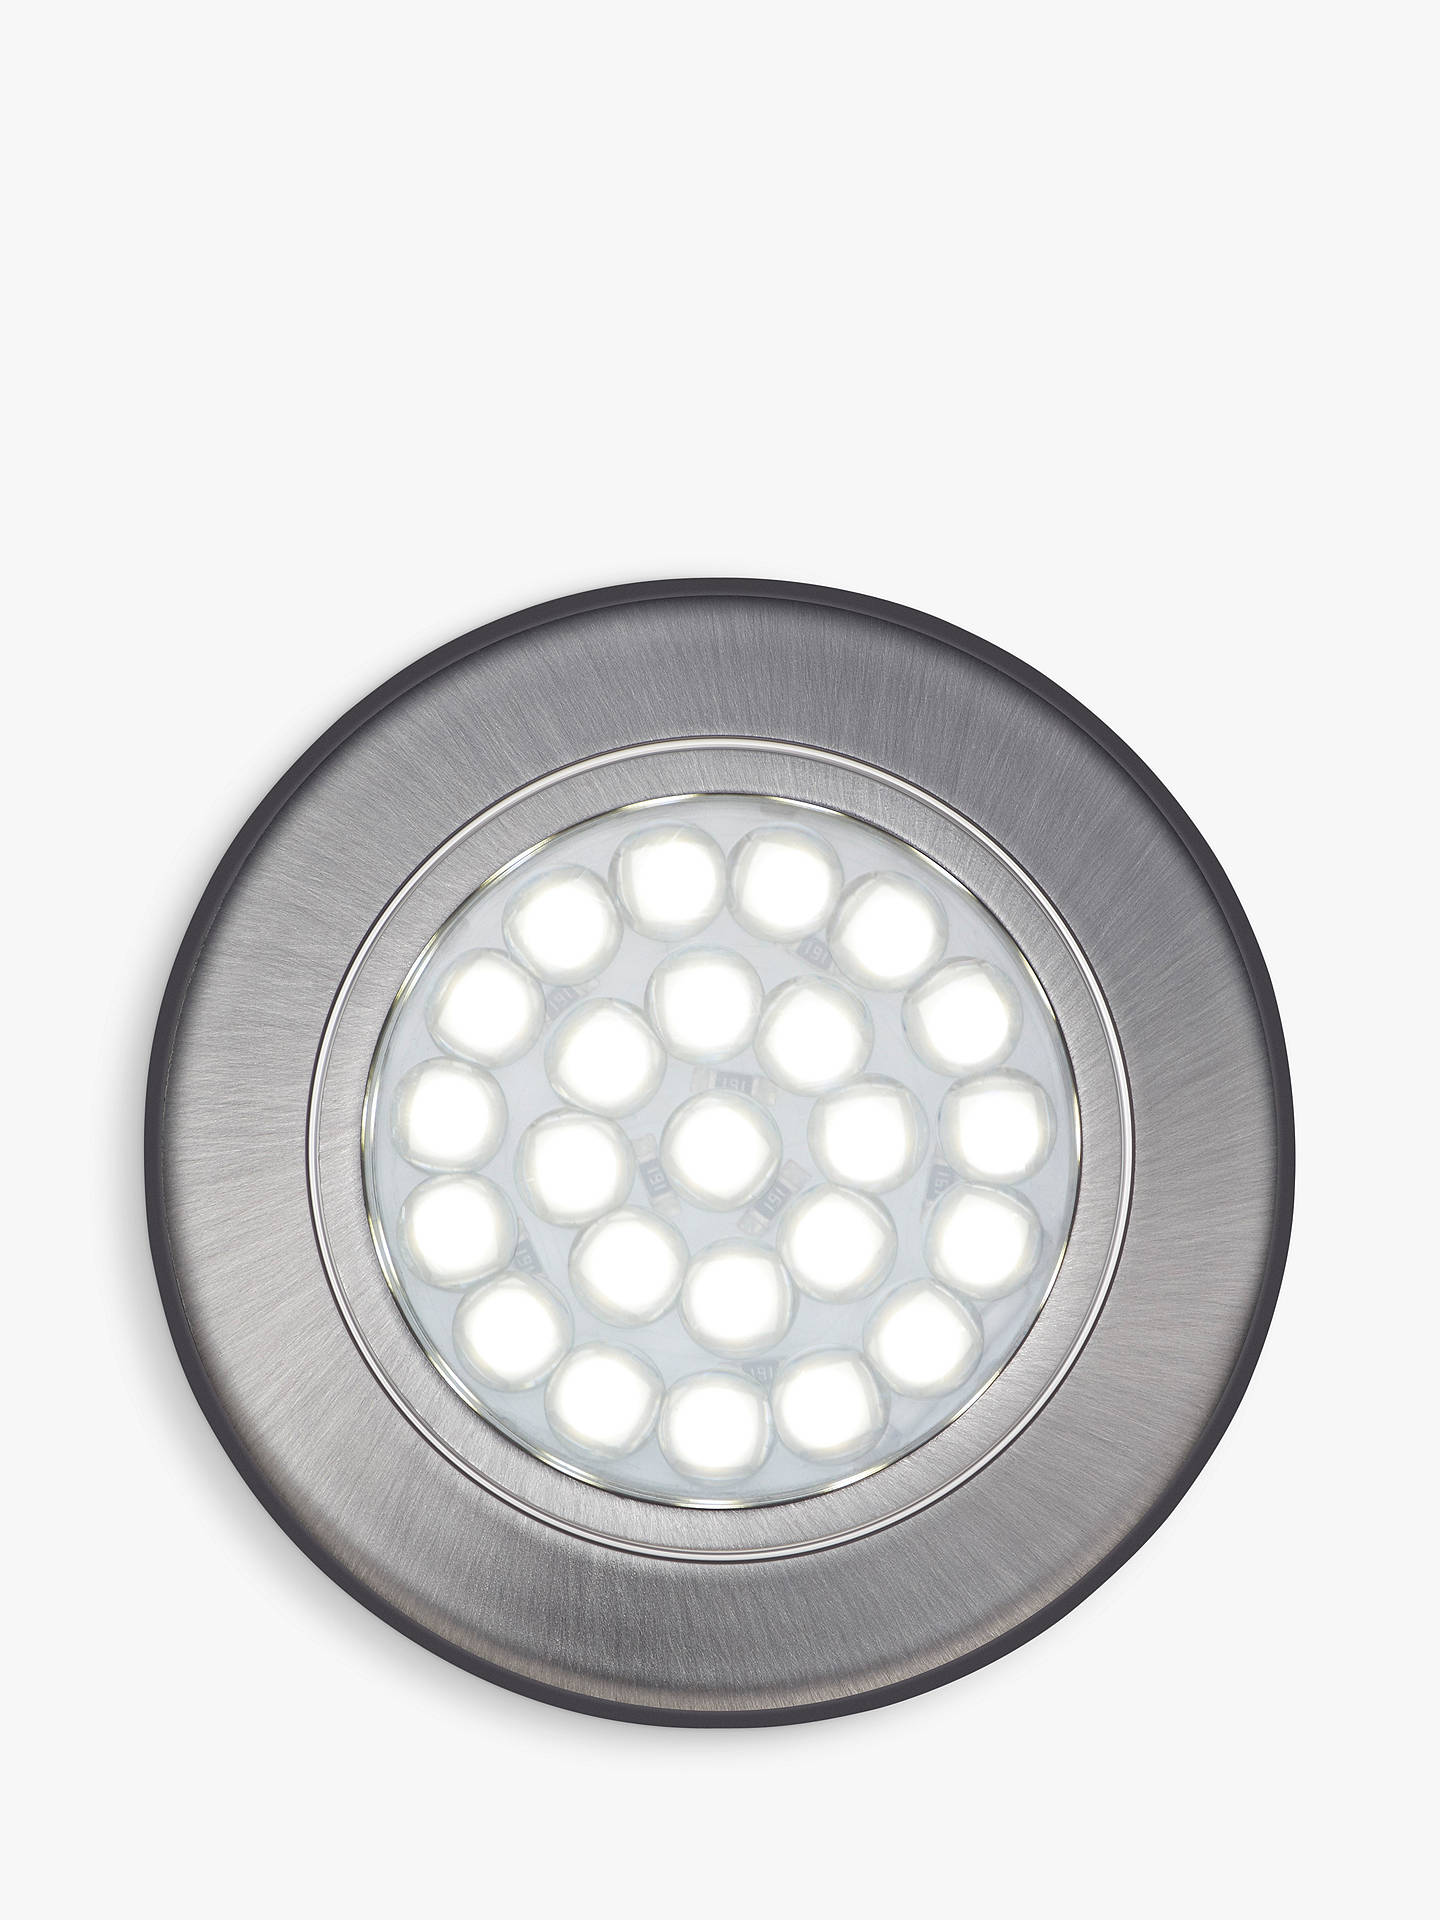 reputable site 4aaa9 b835a John Lewis & Partners Cool LED Circular Flat Under Cabinet Lights, Set of 2